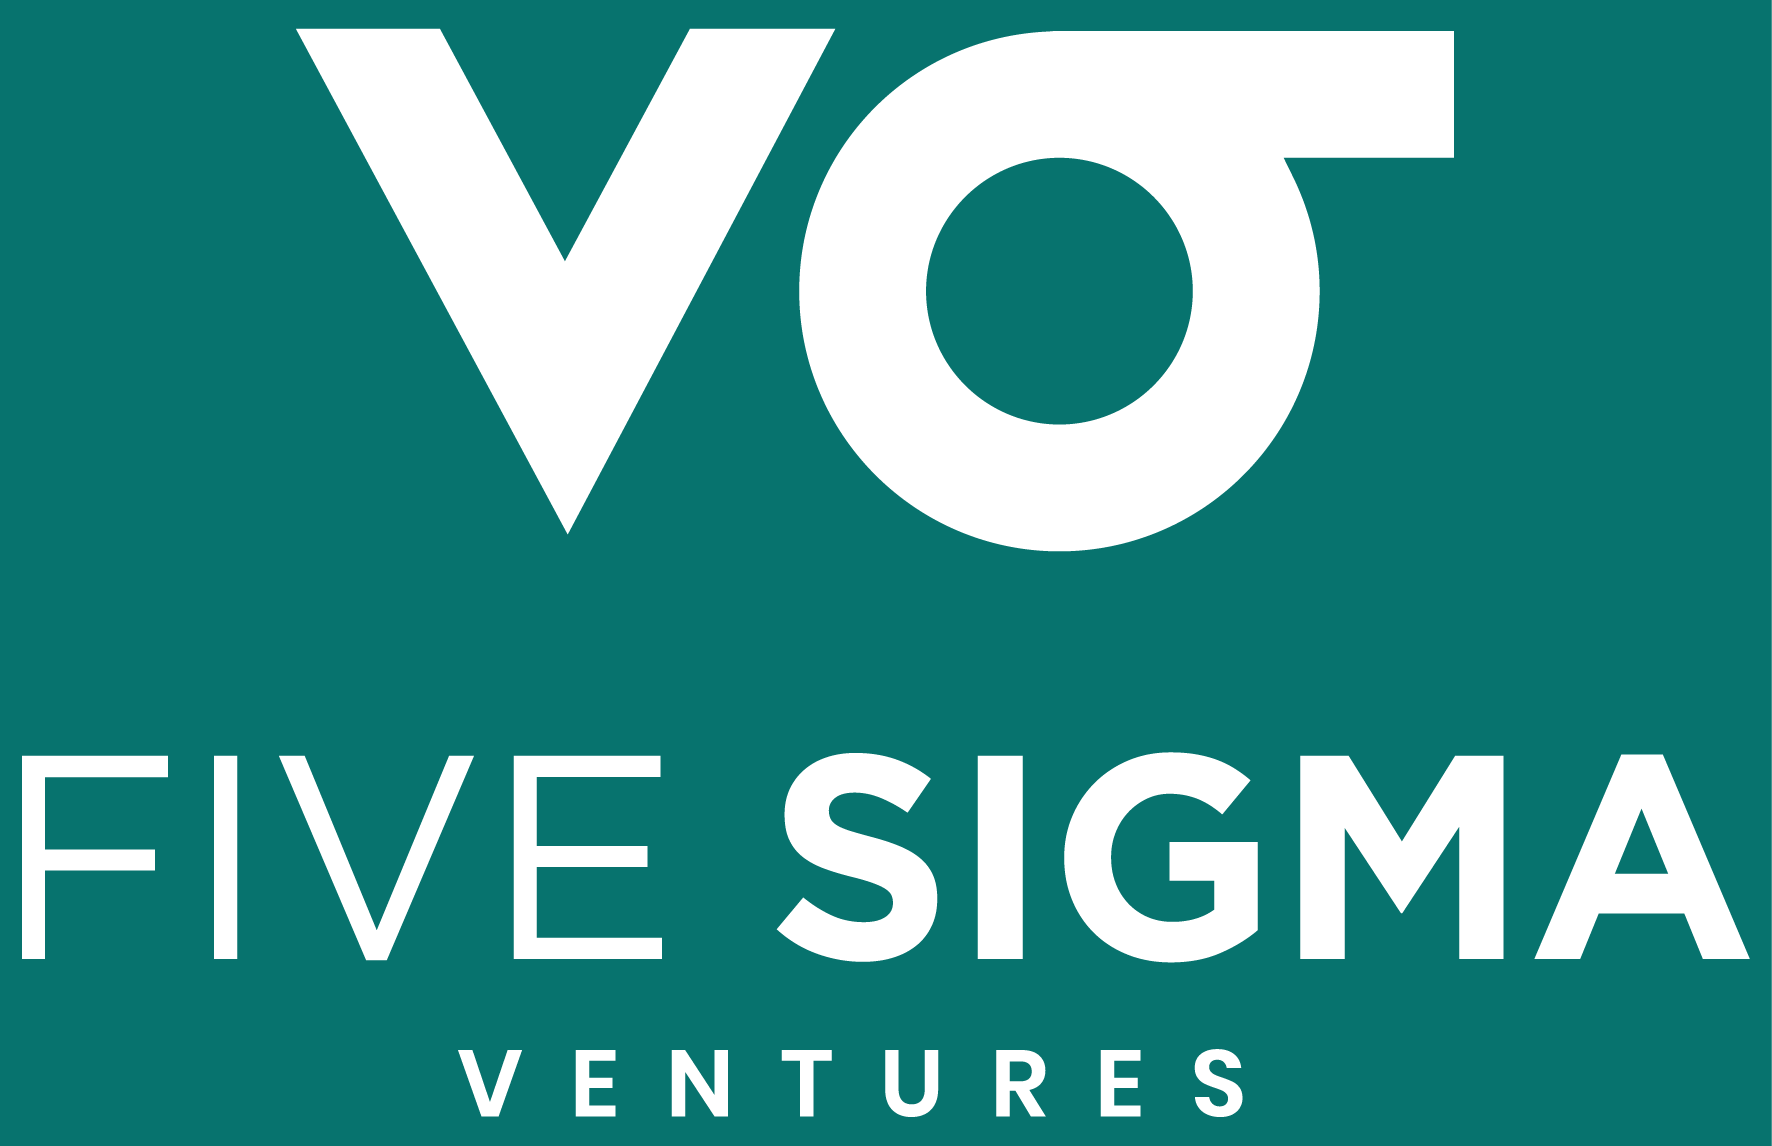 New logo for a Venture Capital firm